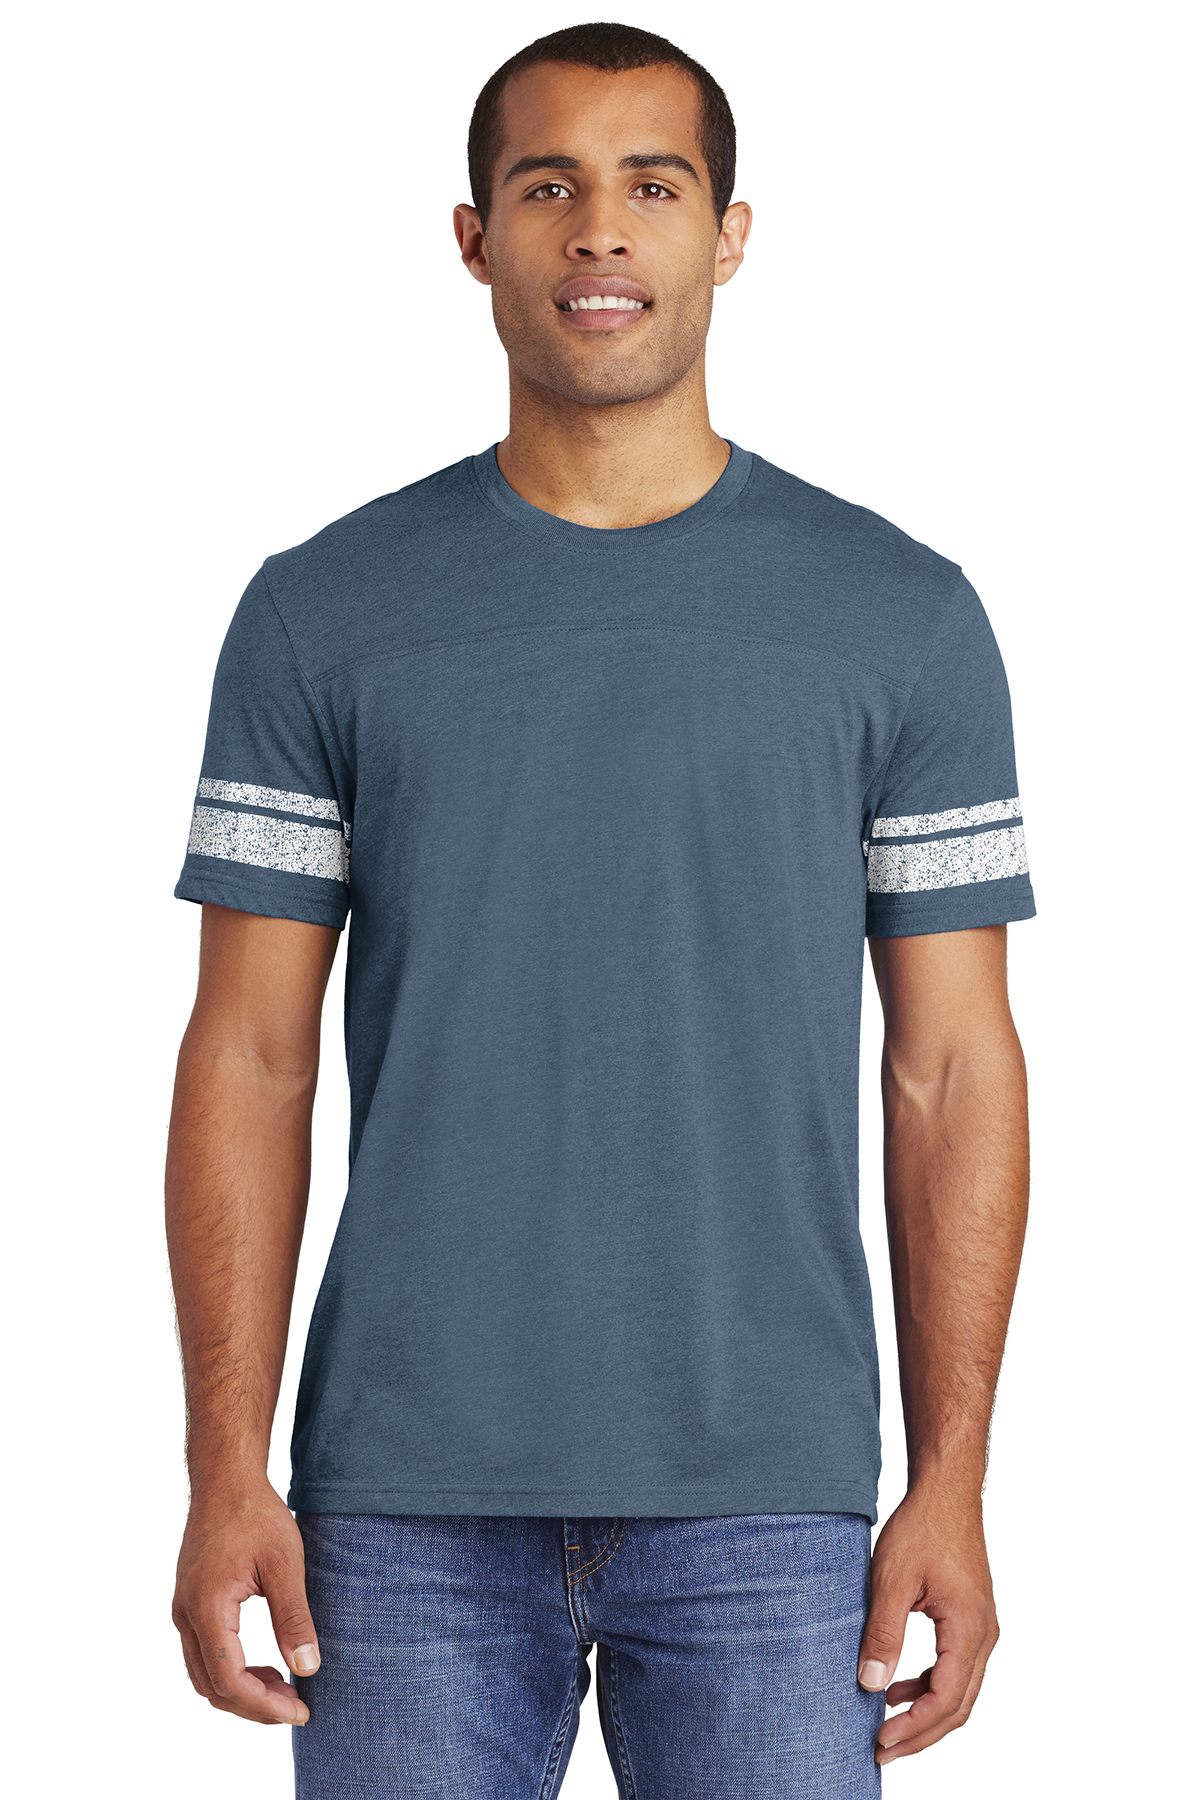 click to view Heathered True Navy/ White